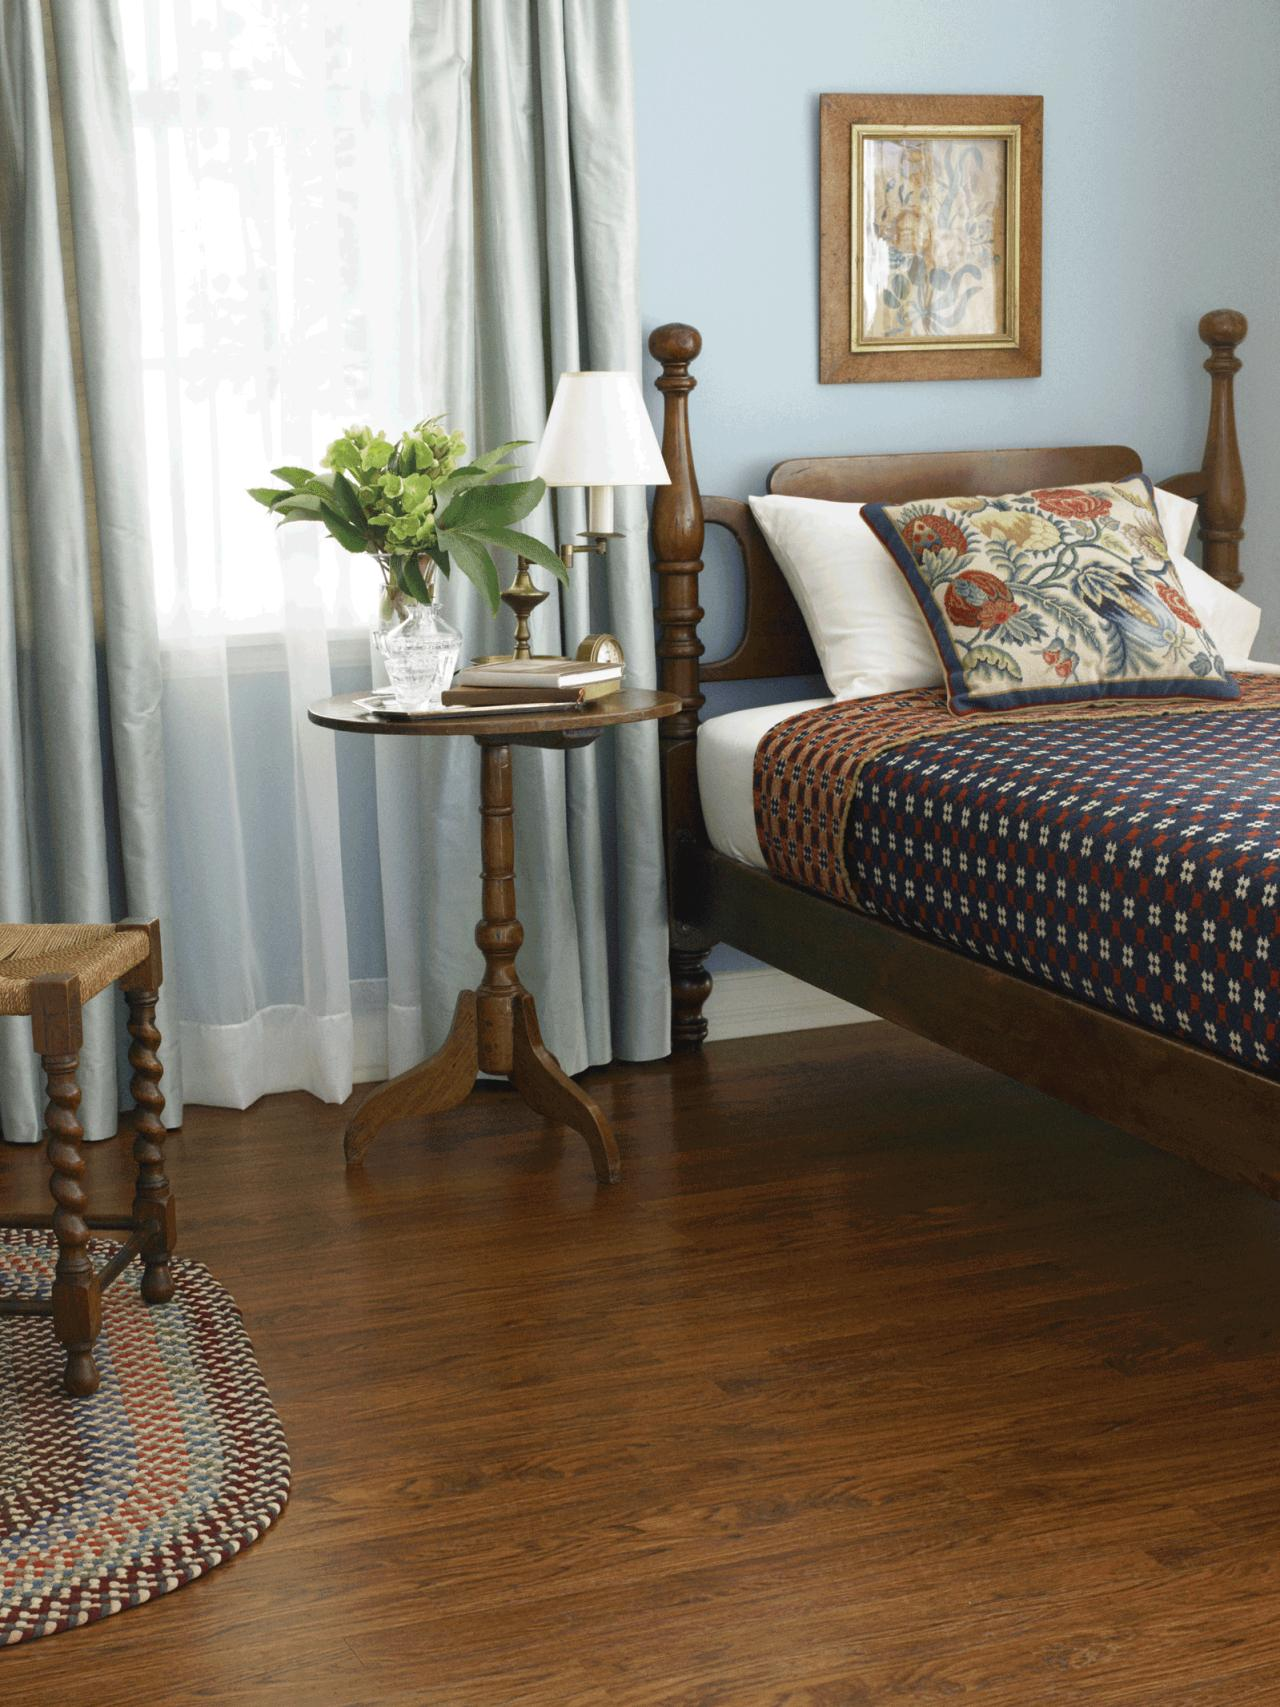 Best flooring option pictures 11 ideas for every room for Bedroom flooring options